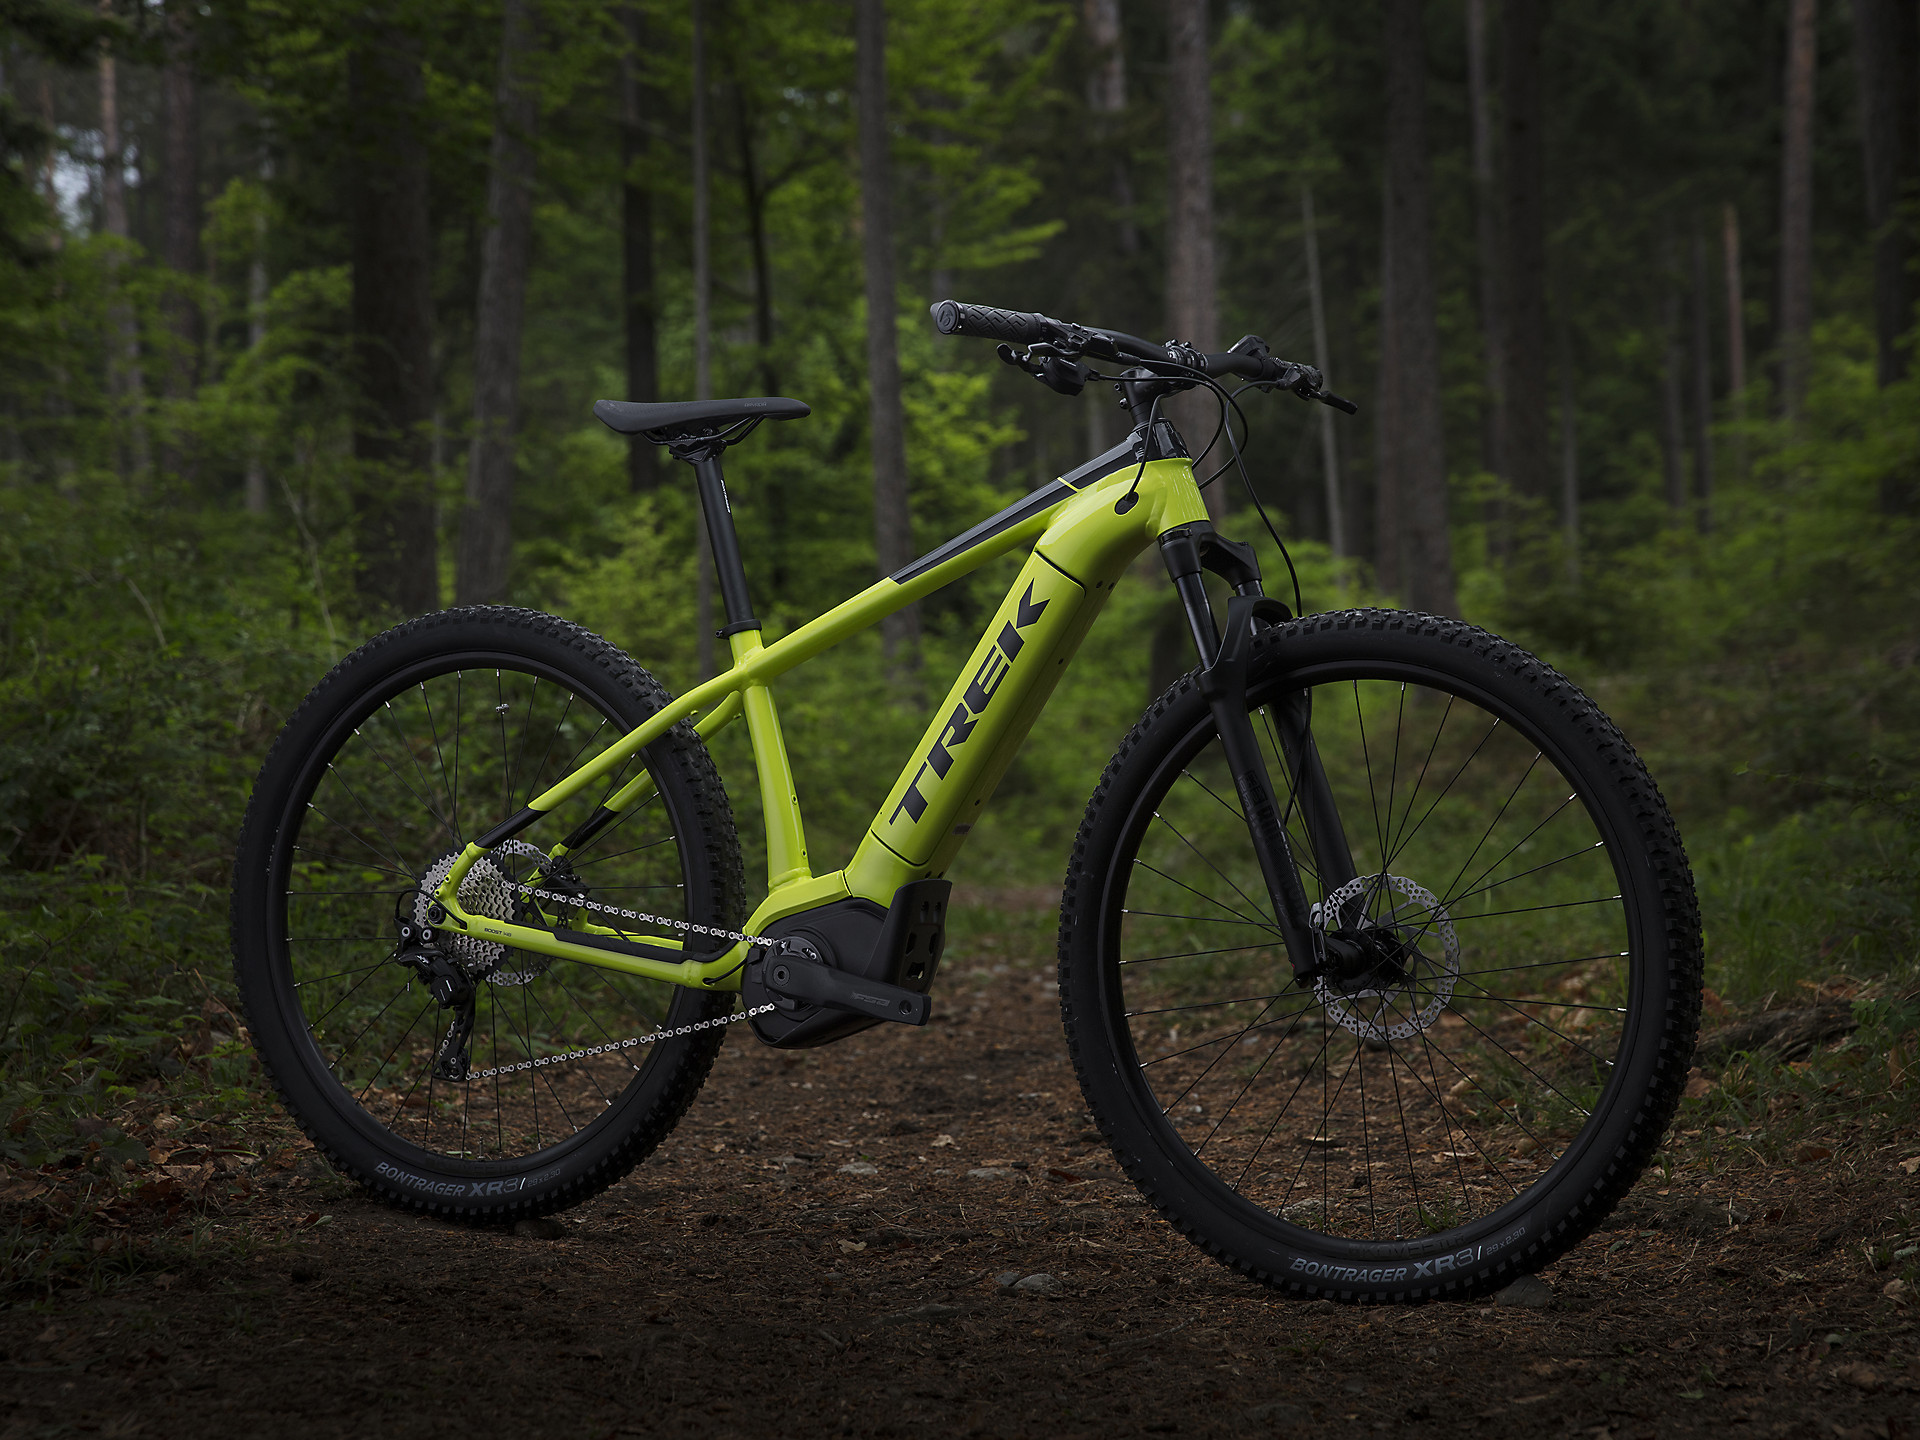 Powerfly 5 Trek Bikes De Both Have Been Verified I Like The Bmtb A Lot However Just